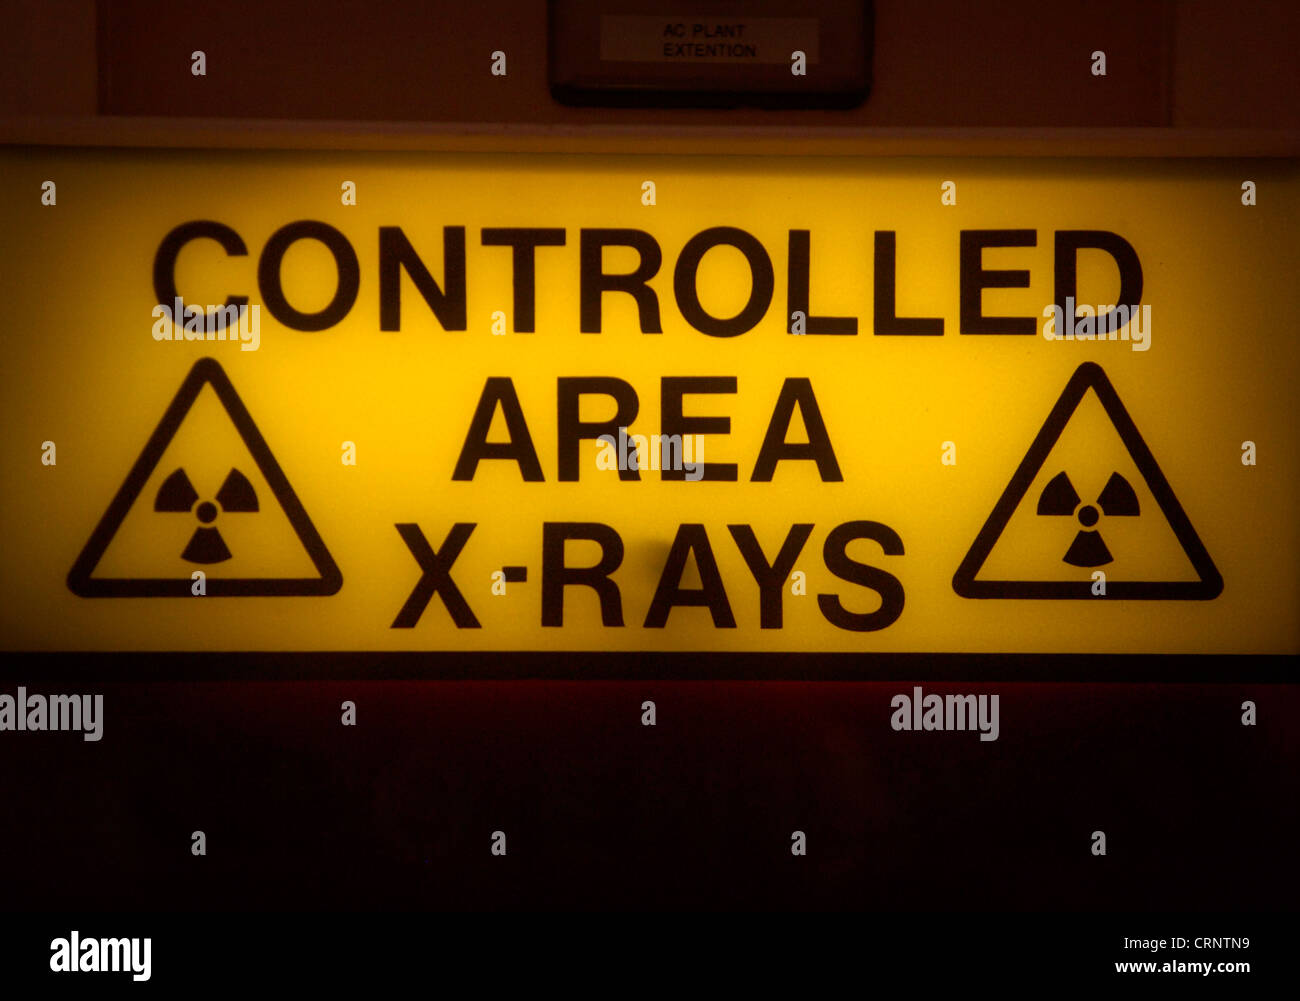 X ray controlled area sign - Stock Image